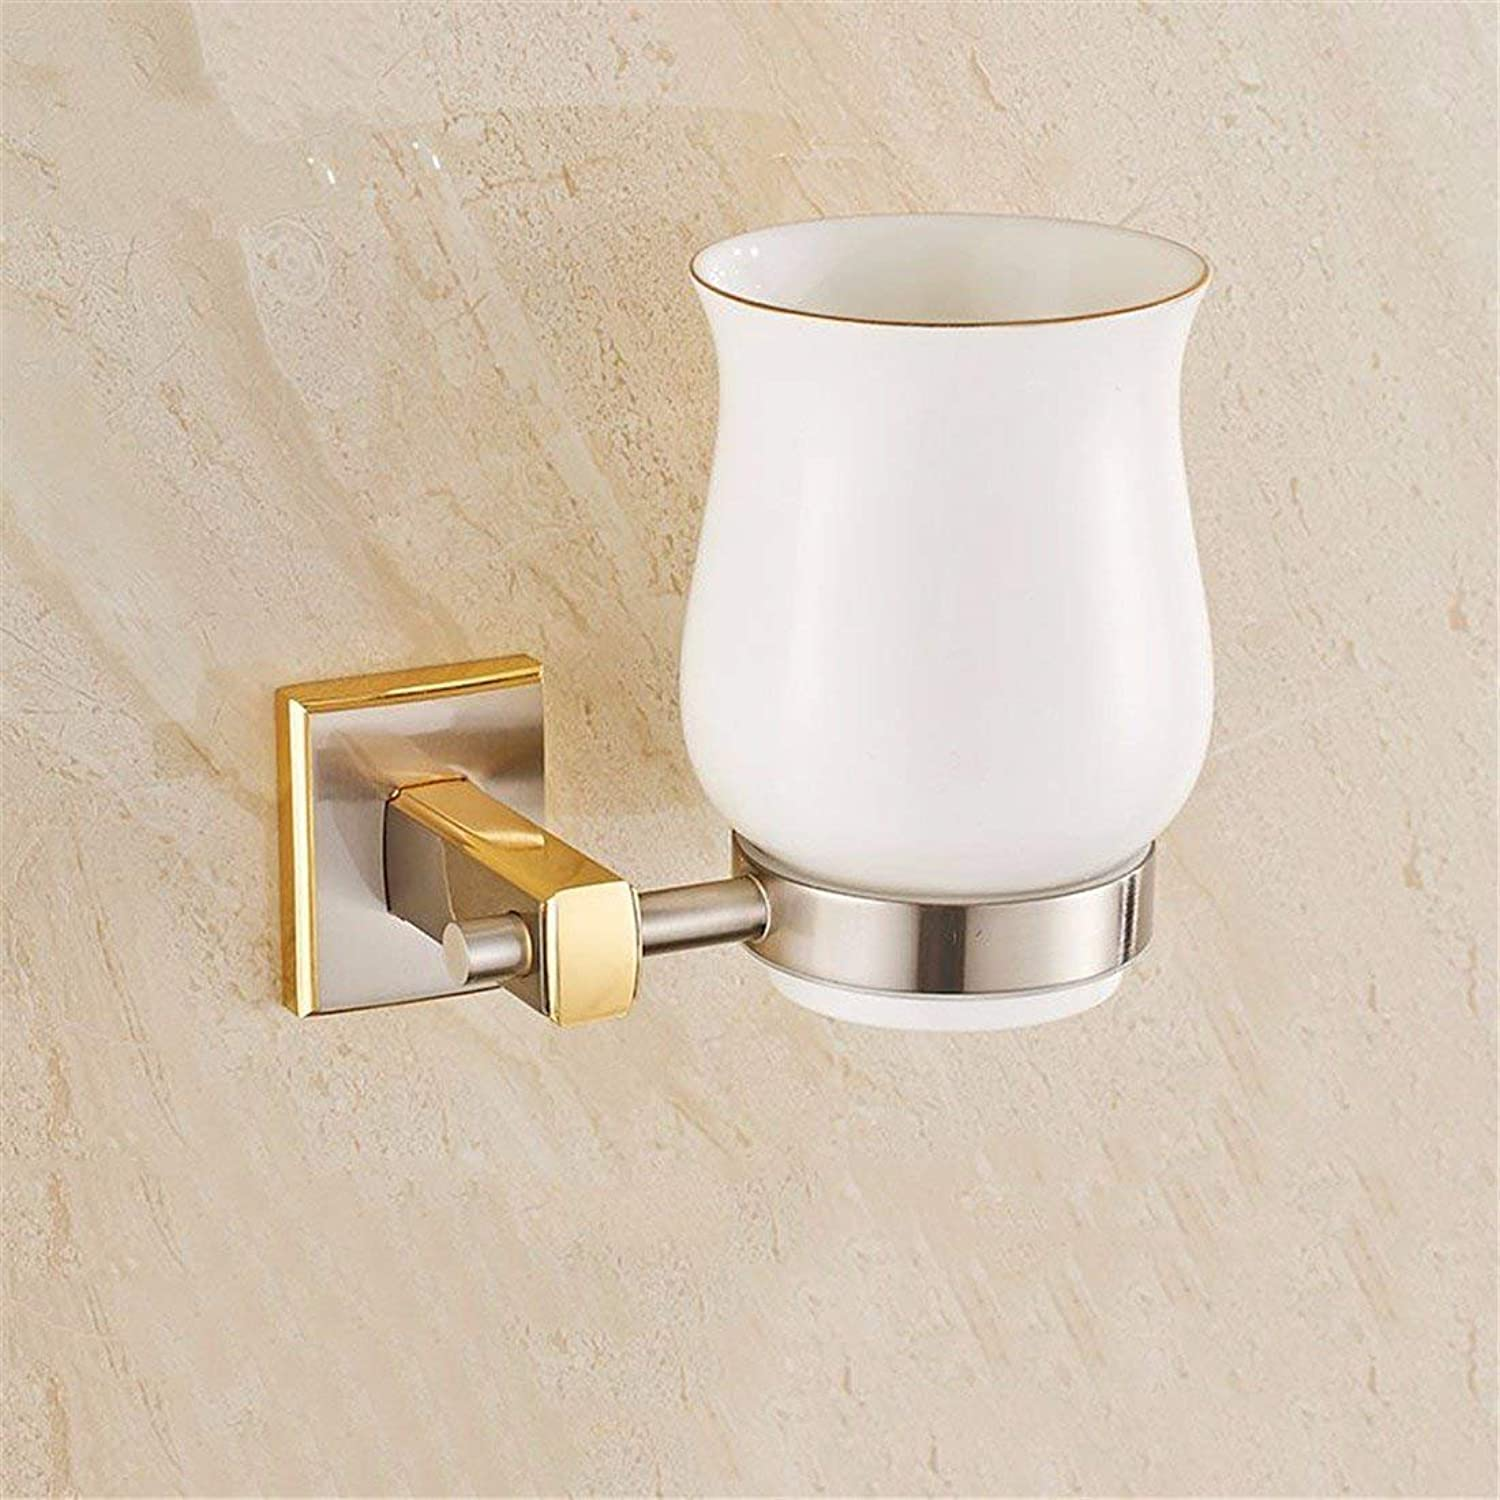 Simple Design of a Copper-gold Set Bathroom Accessories Toilet Paper Rack Soap Solid Hook,Single Cup